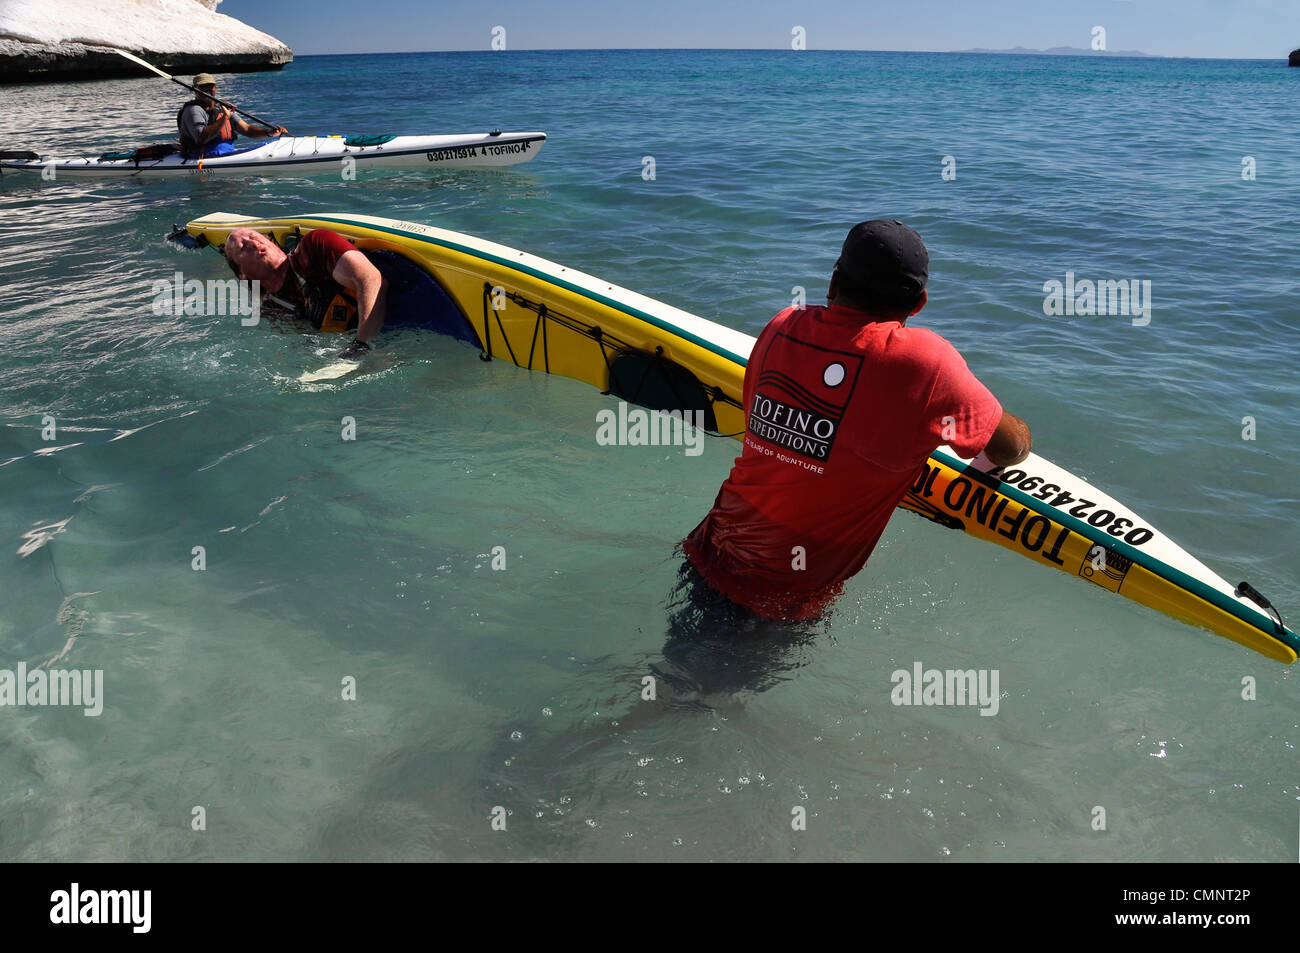 Guide teaching how to roll a sea kayak, Sea of Cortez, Loreto Bay National Park, Baja California, Mexico. - Stock Image